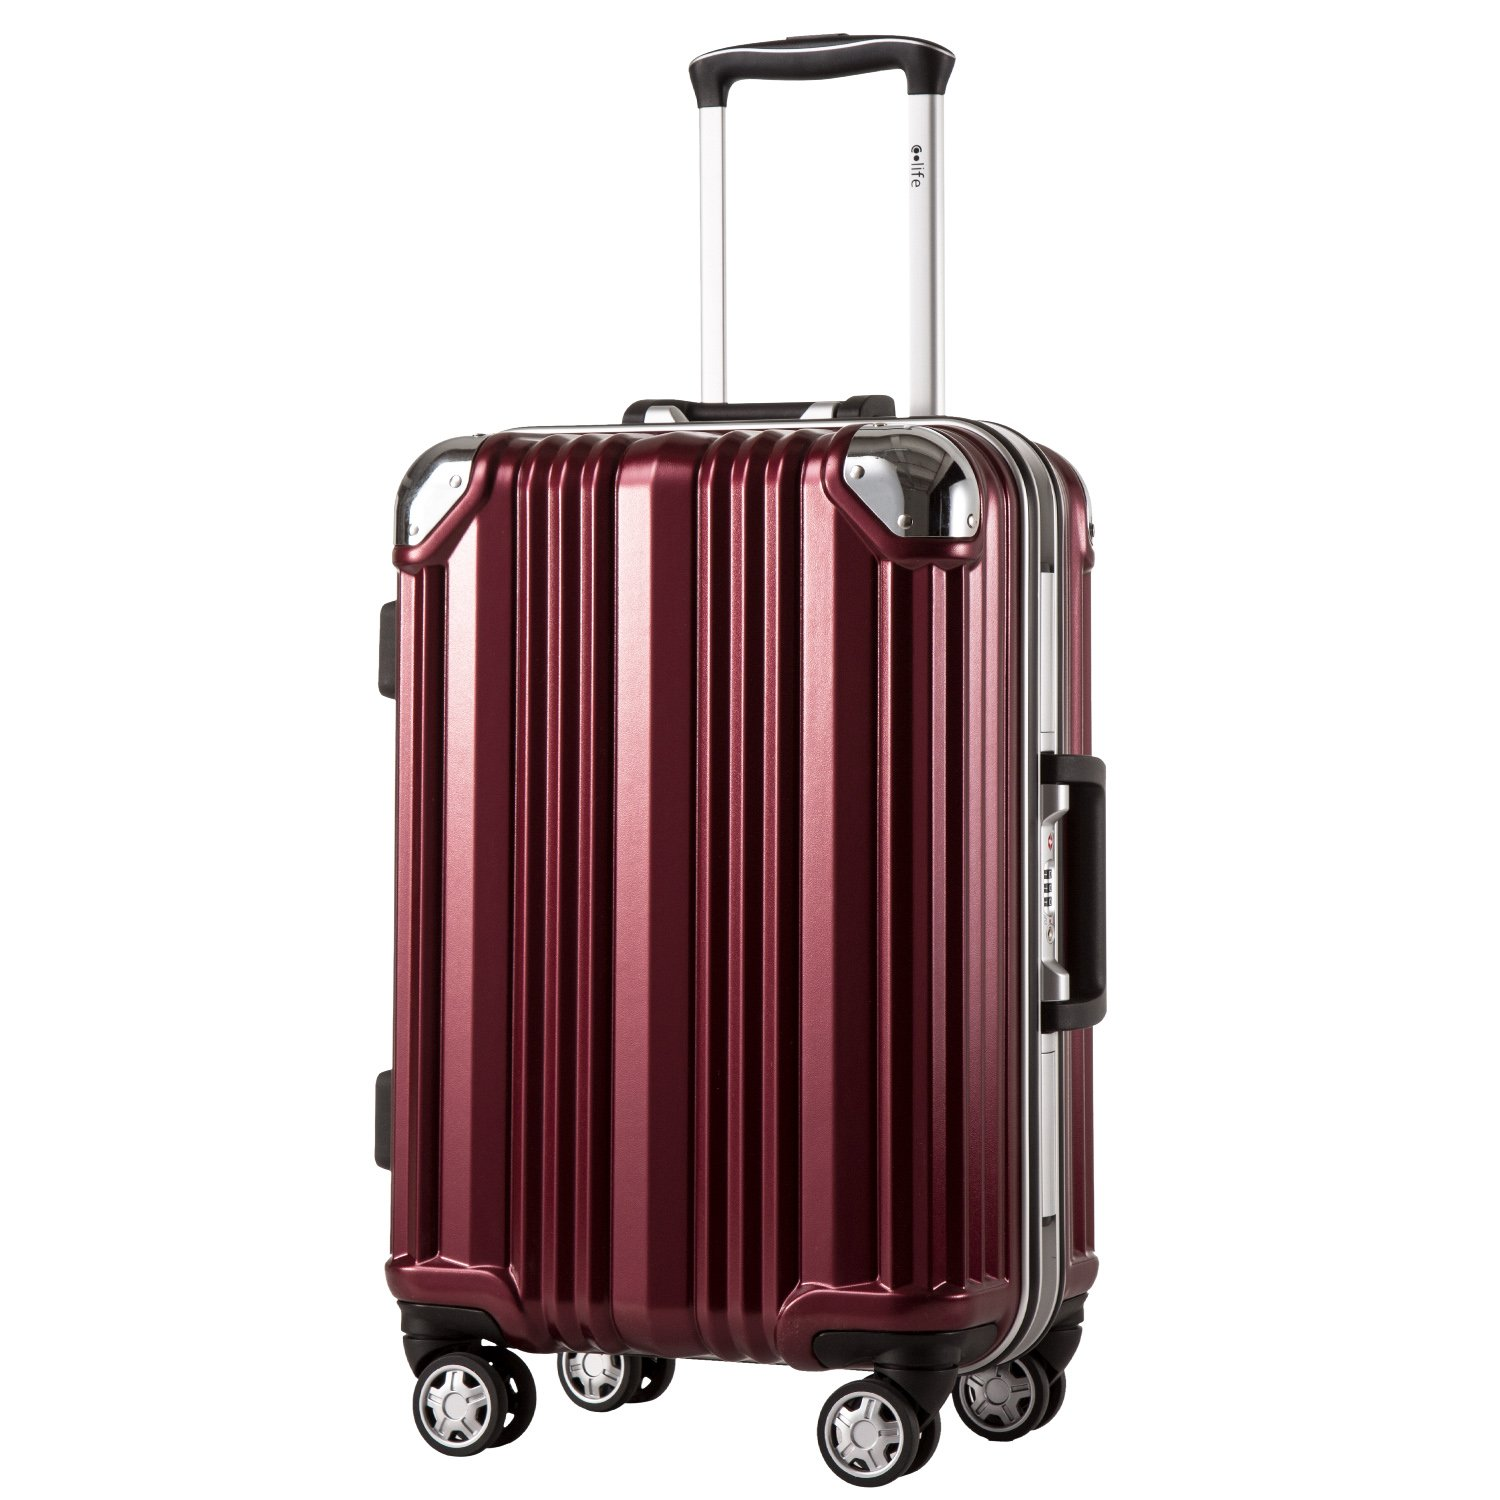 Coolife Luggage Aluminium Frame Suitcase 3 Piece Set with TSA Lock 100%PC (L(28in), Wine red)